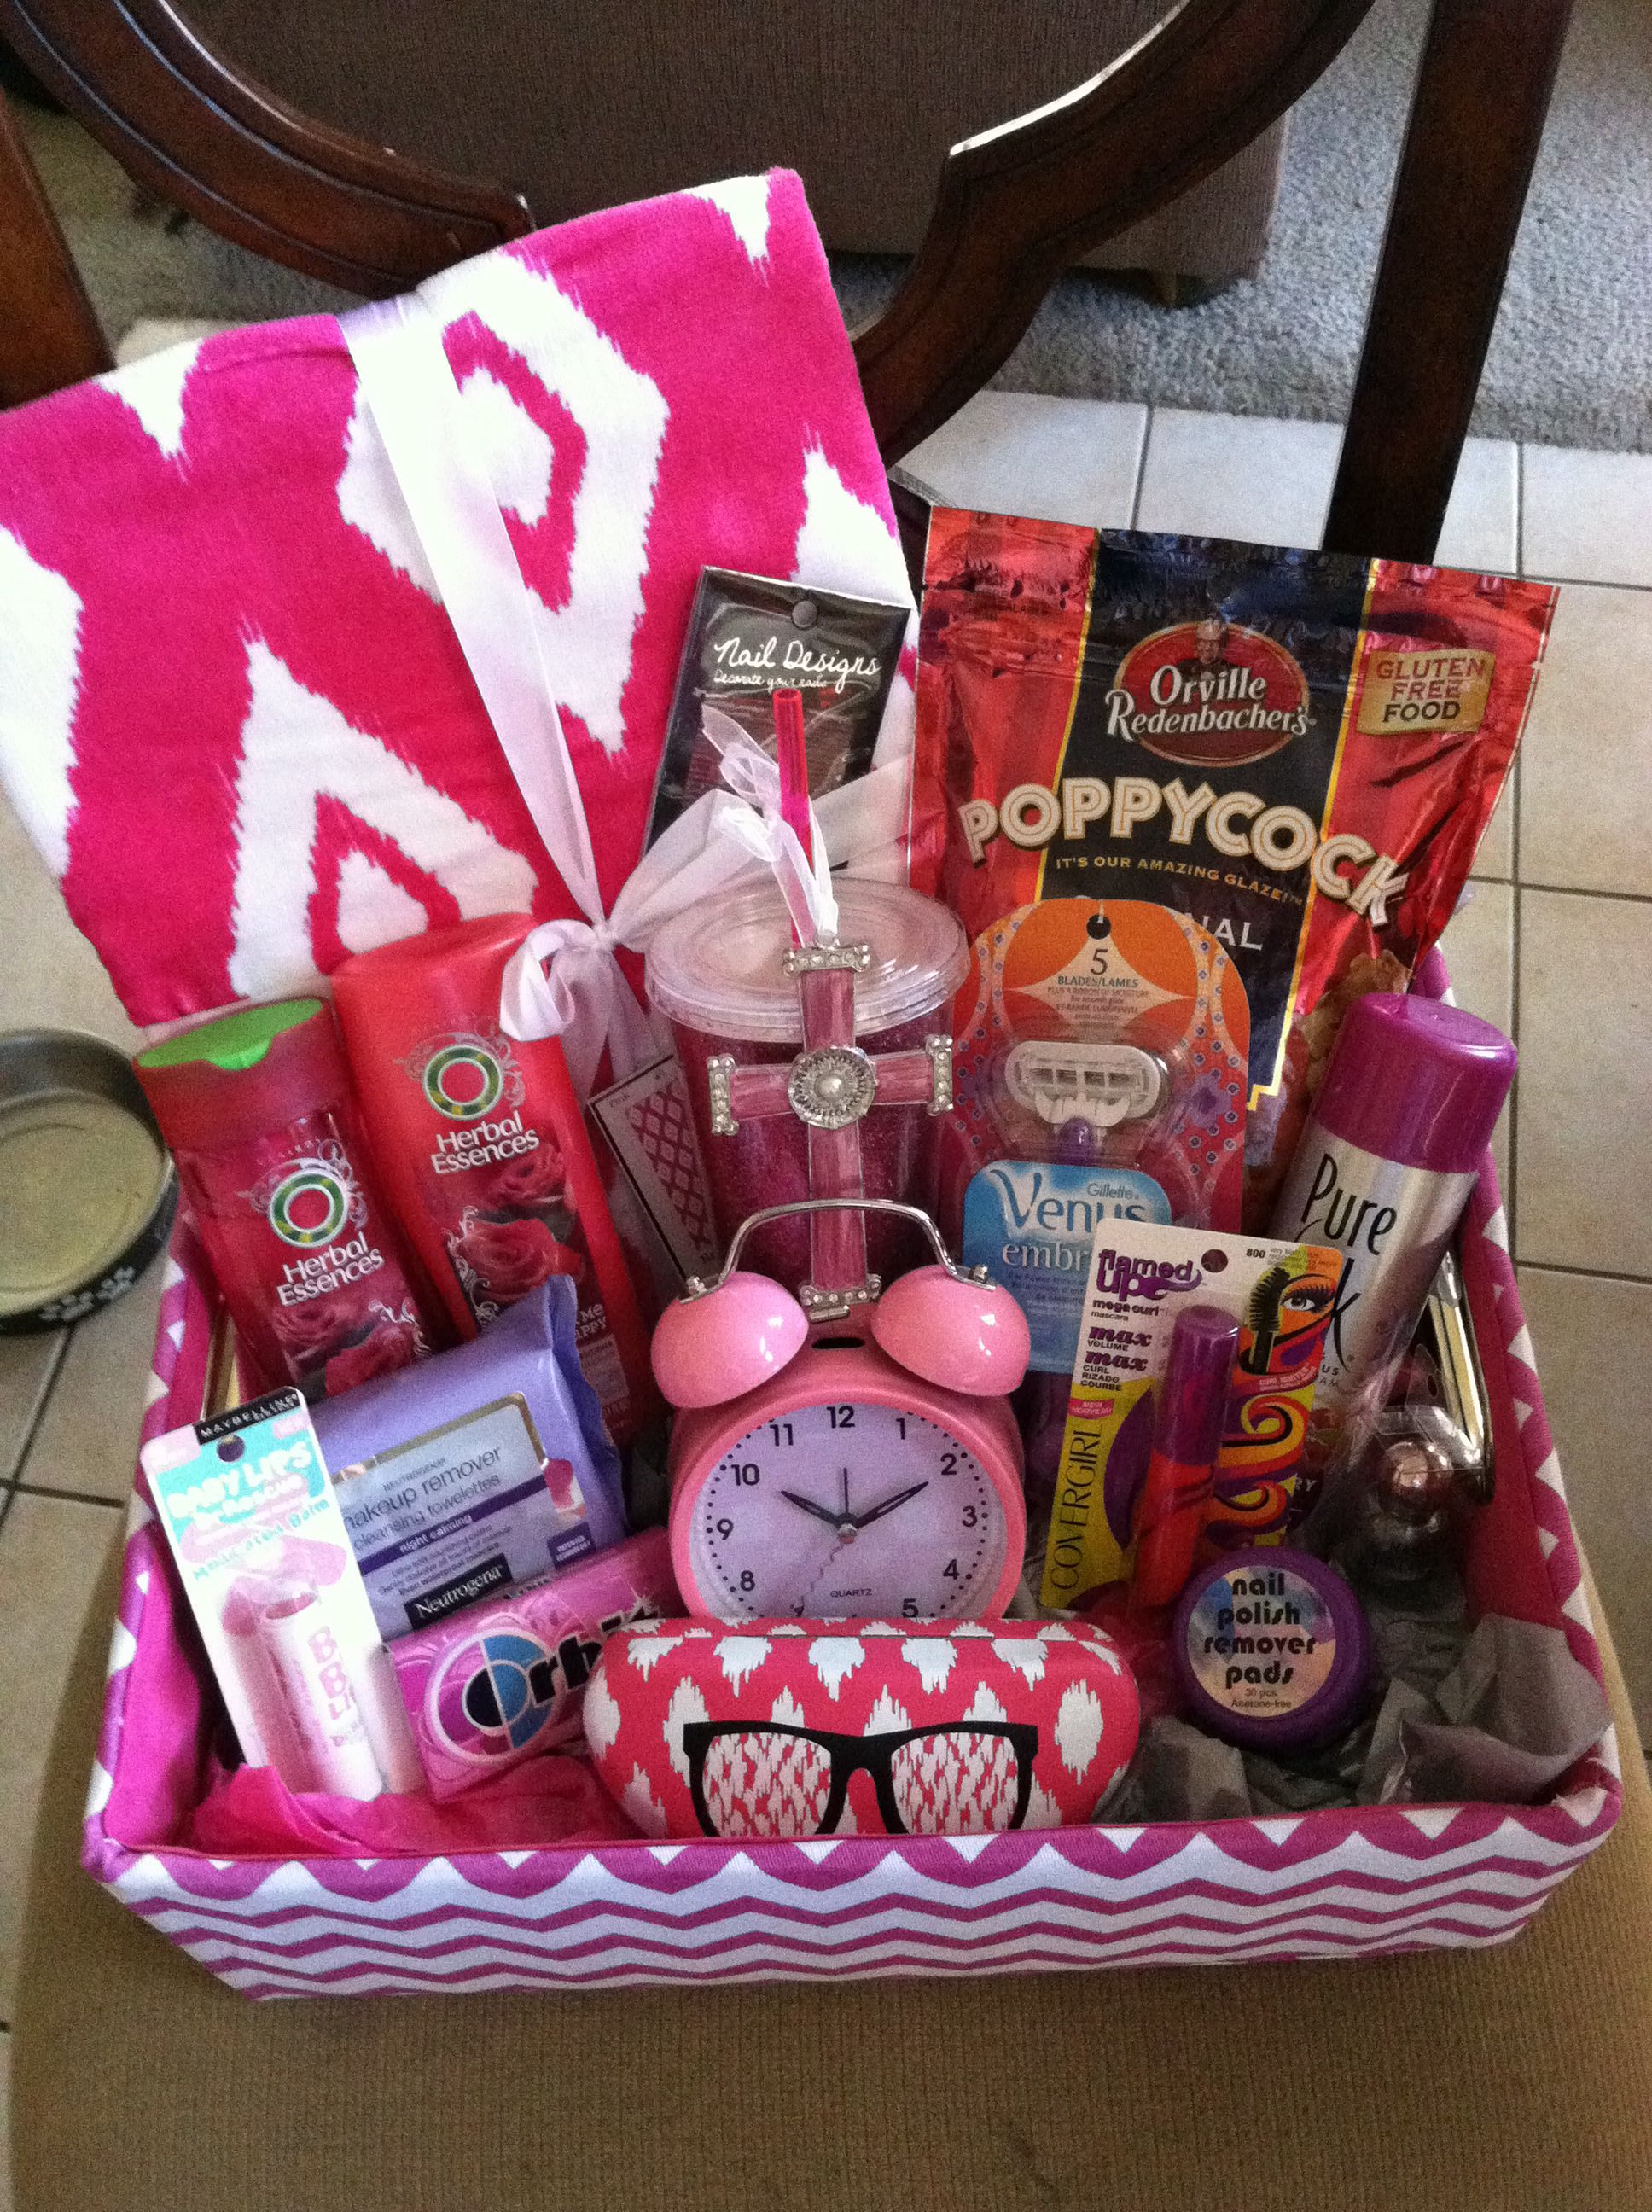 personalized gift basket i want one for my birthday hint hint lol made this for my best friends birthday